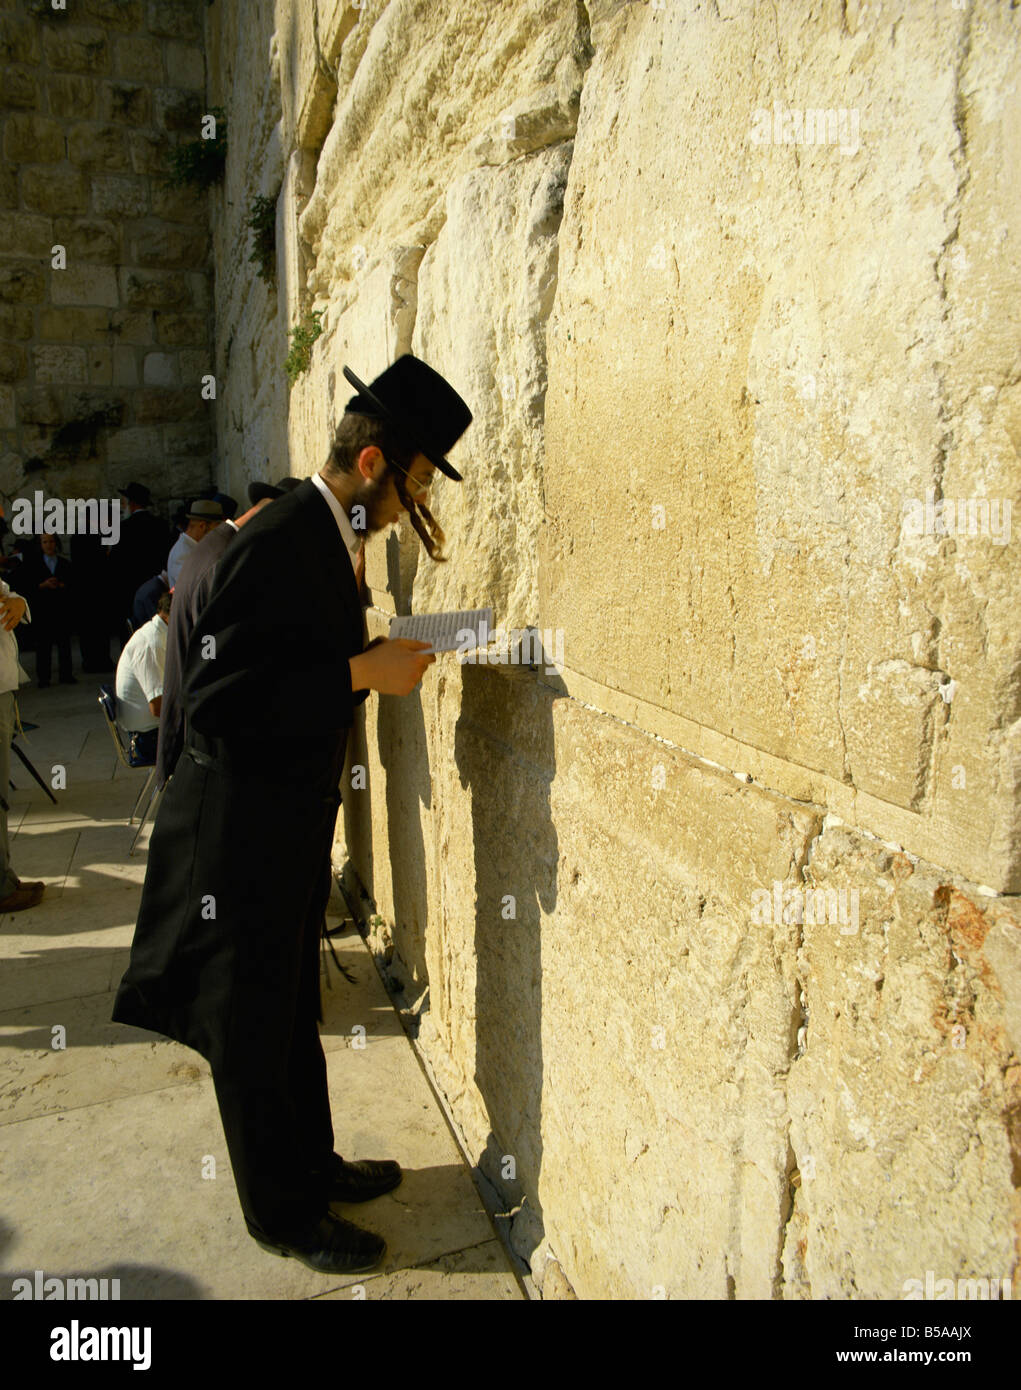 Hasidic Jew praying reciting at the Western Wall Wailing Wall Jerusalem Israel Middle East - Stock Image